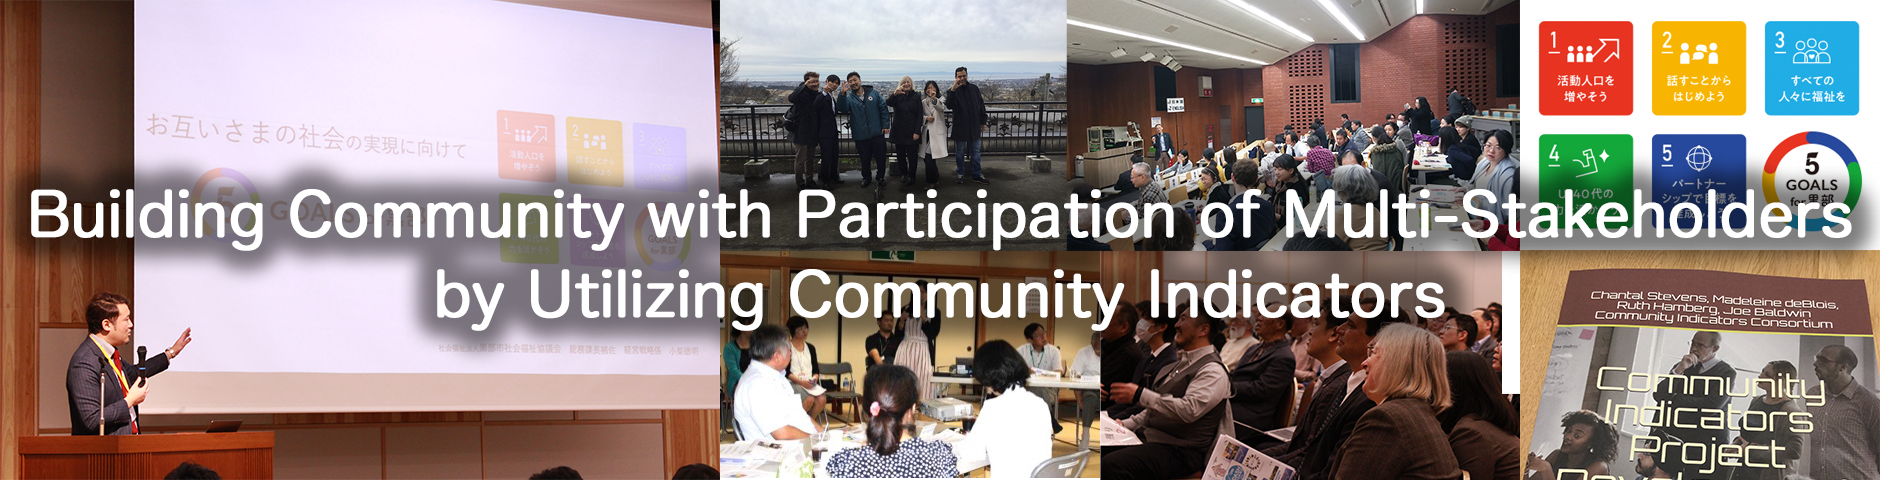 Building Community with Participation of Multi-Stakeholders by Utilizing Community Indicators